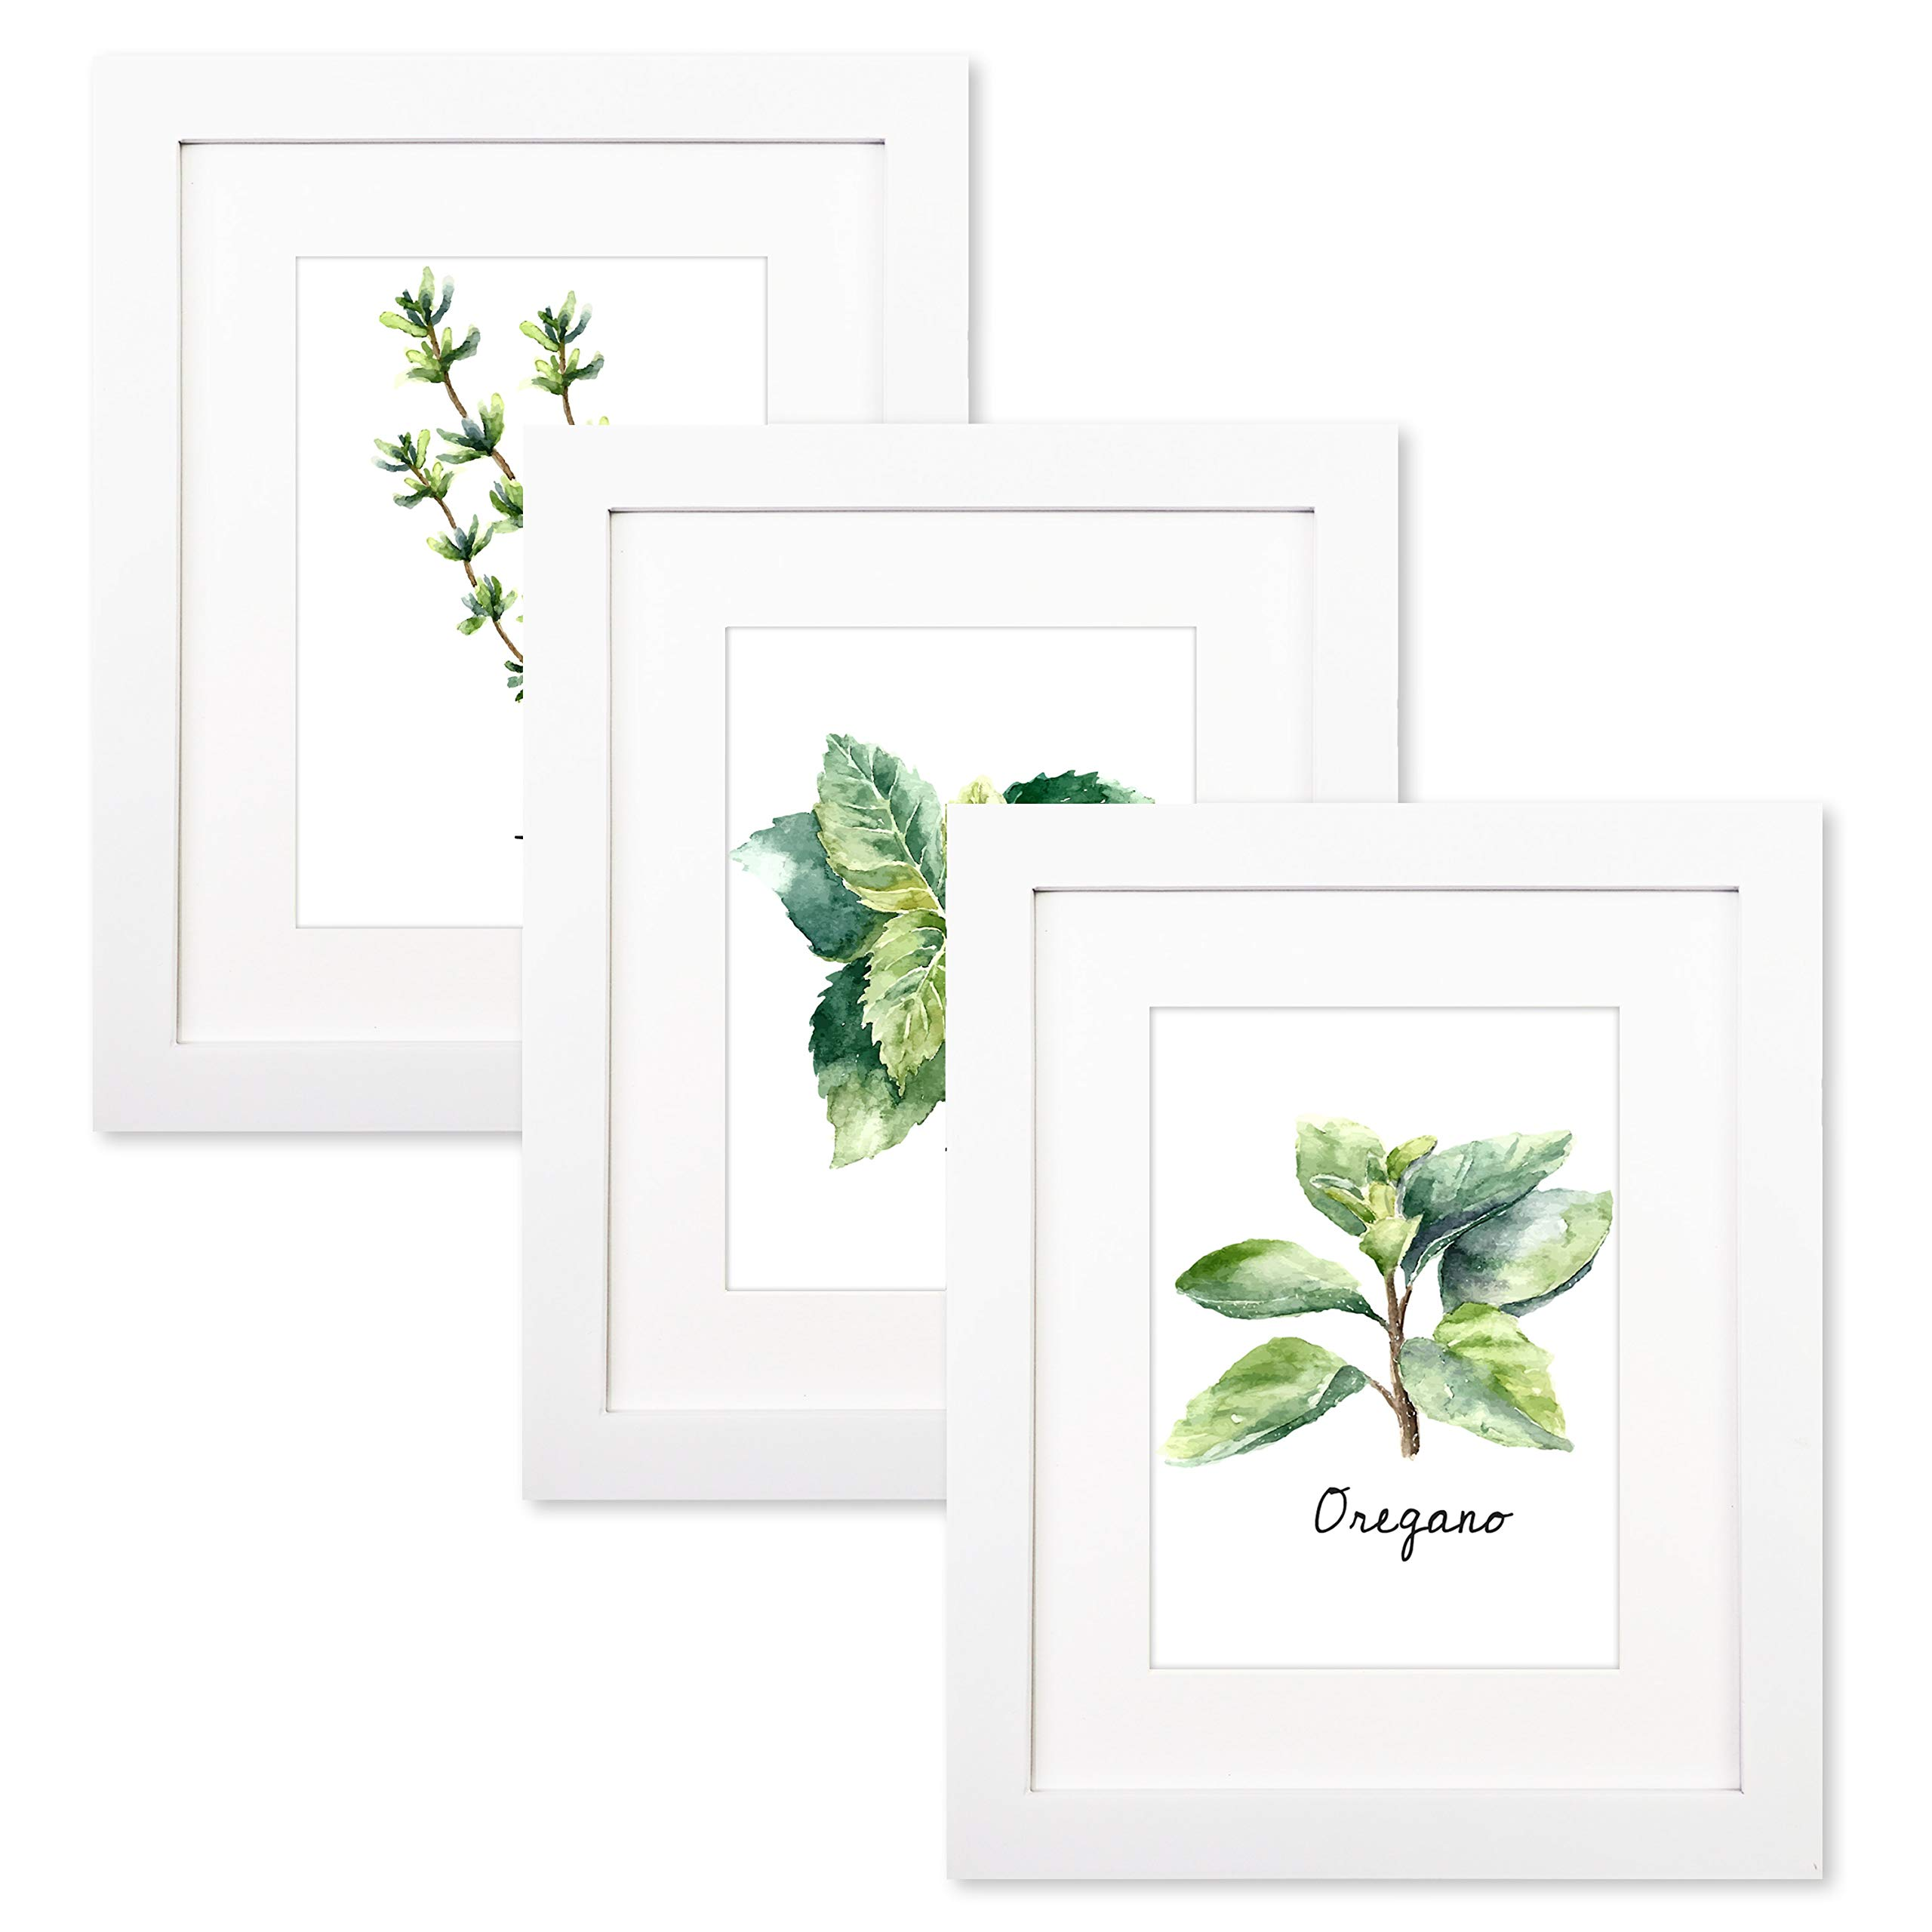 Trees&Forrest 8'' x 10'' White Picture Frames Mat to 5'' x 7'' Included Glass Front for Wall Tabletop Artwork Display Pack of 3 by Trees&Forrest